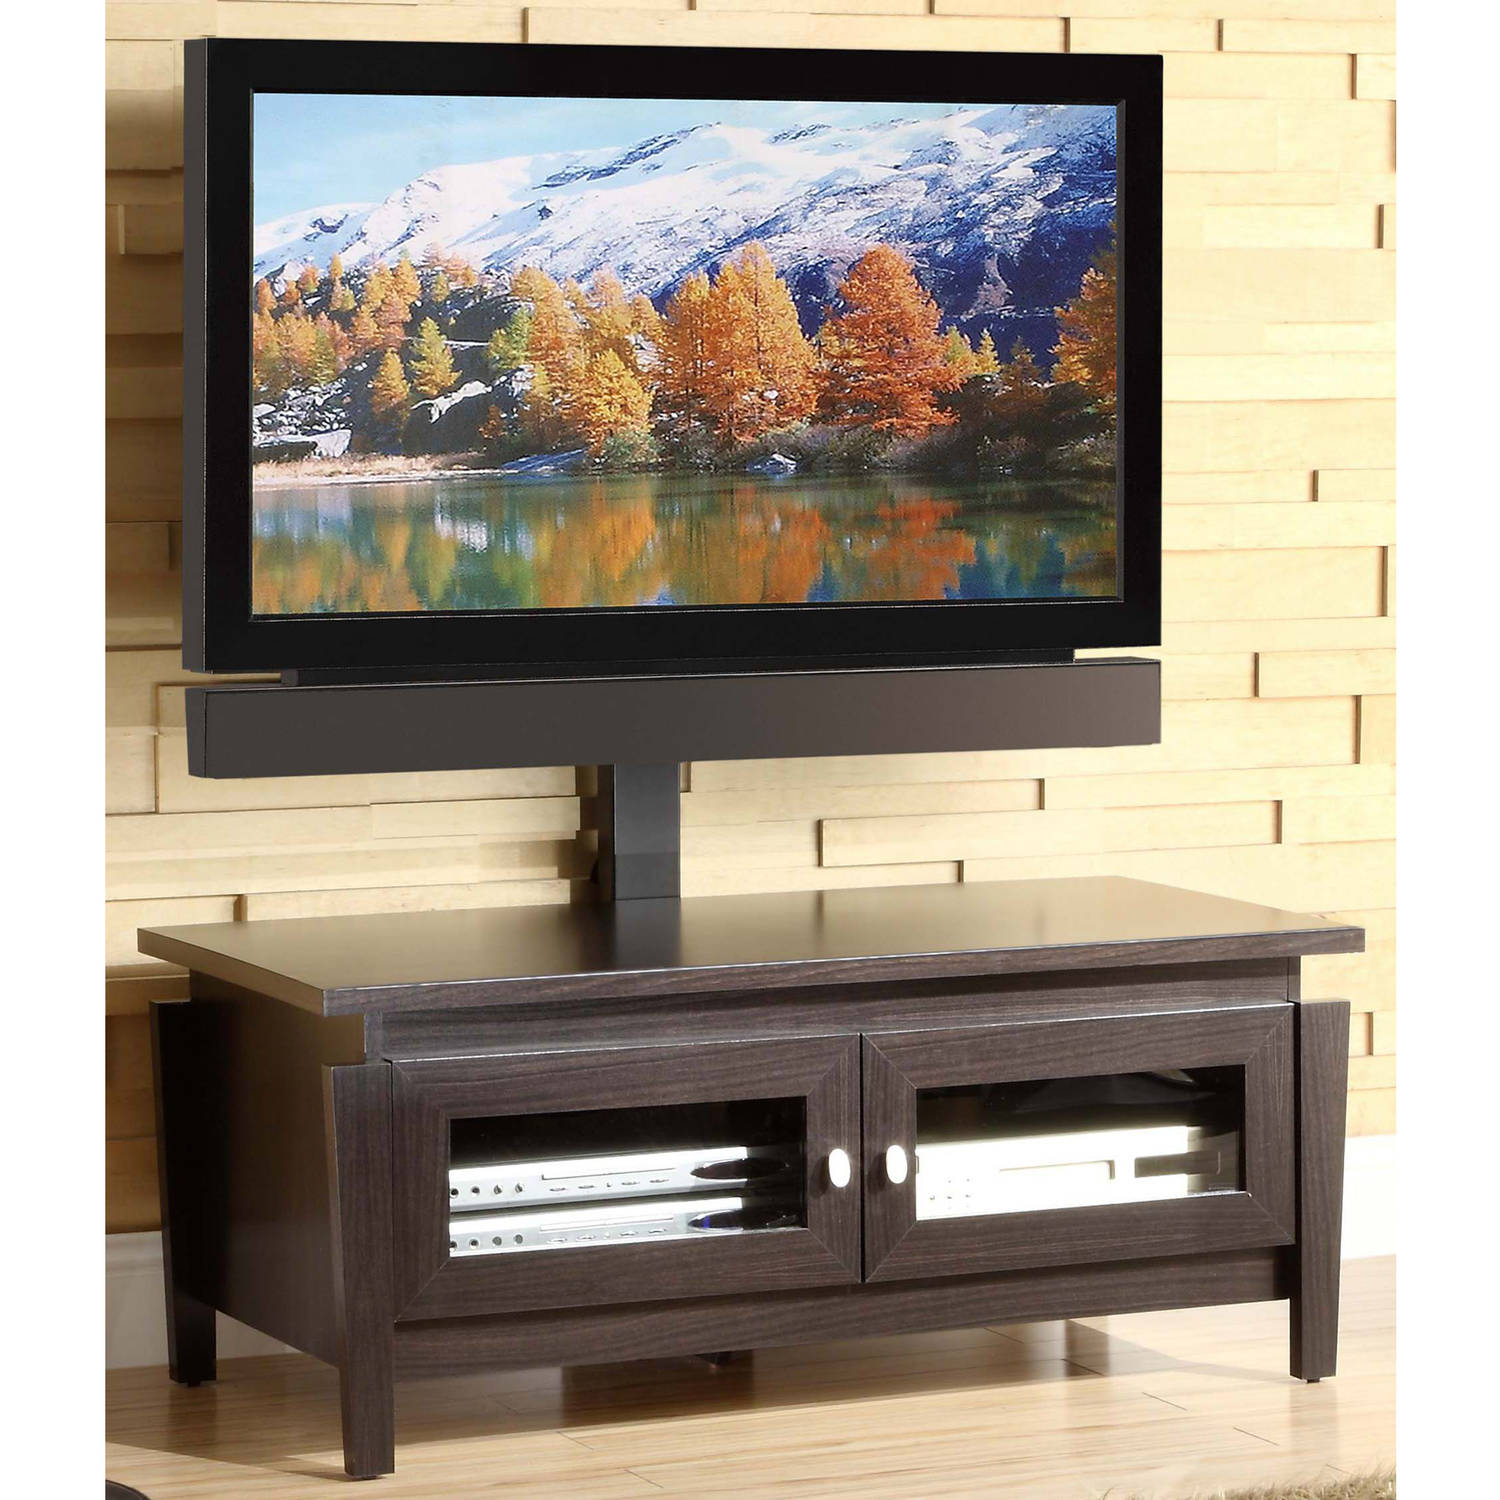 Table De Television Affordable Planches Parpaings Caisses De Vin  # Table Television Ecran Plat